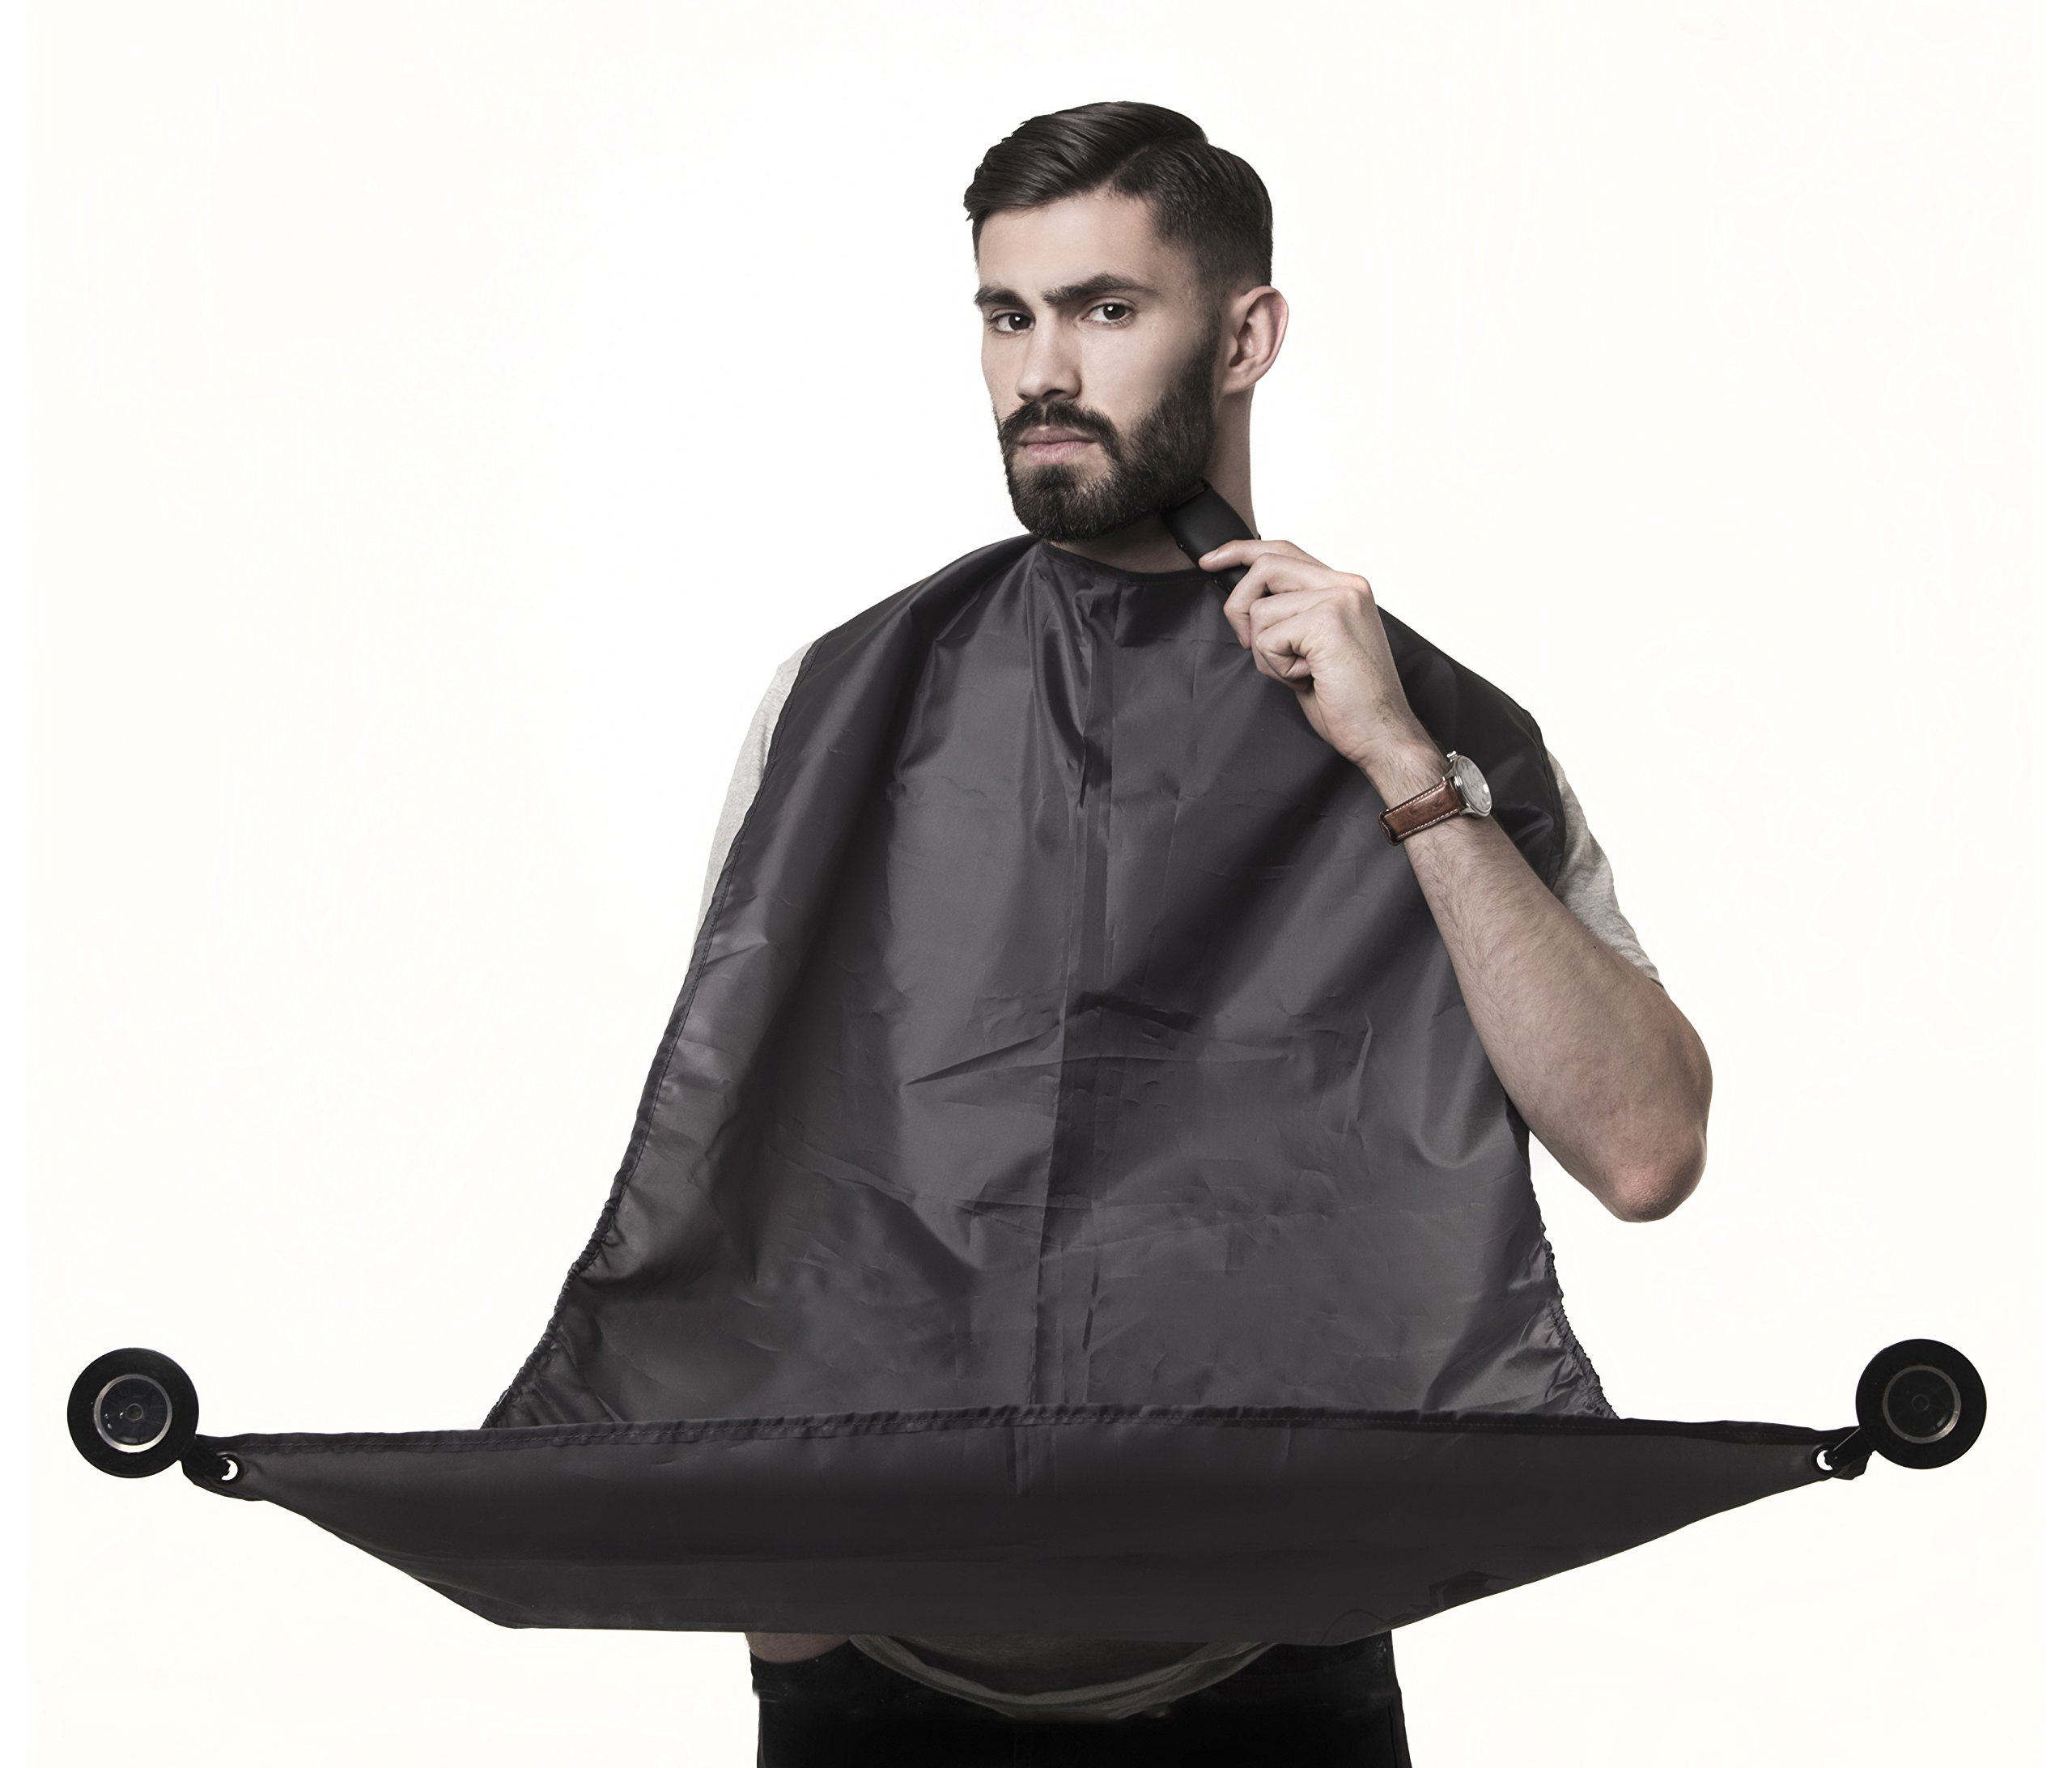 2017 New design Darwins Beard Catcher™ 2.0 – Trim Your Beard Hair Clippings in Minutes Without The Mess!